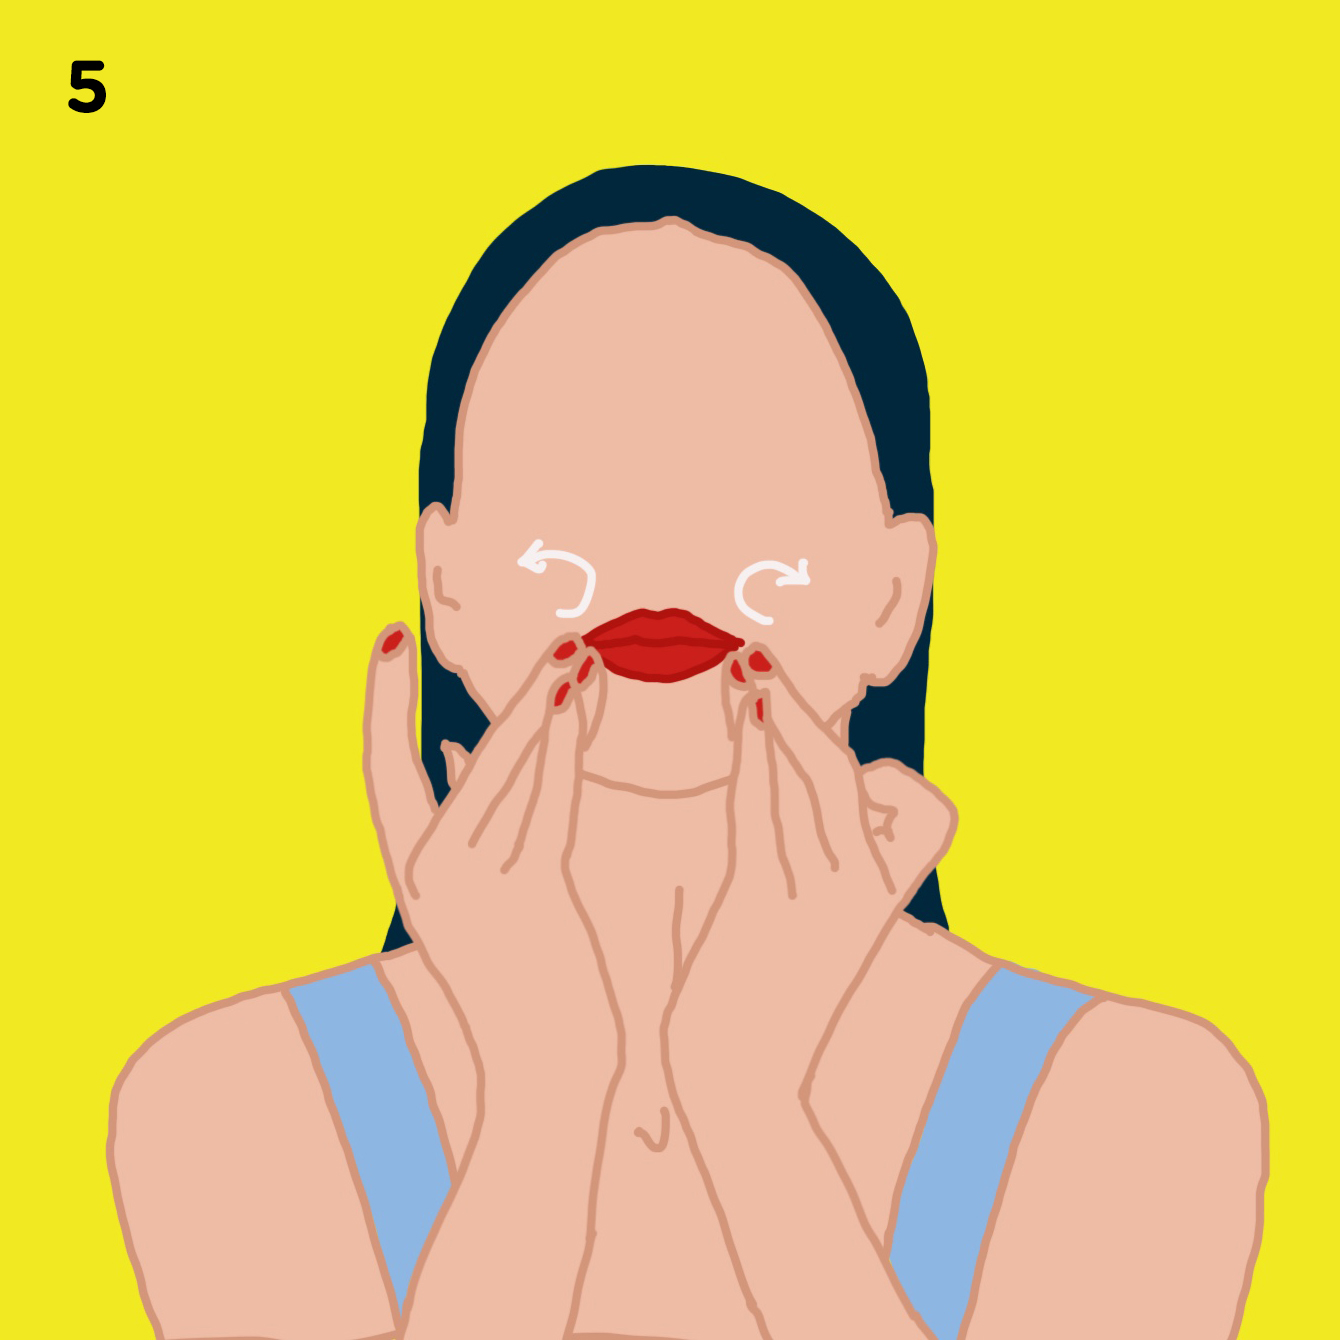 5. YOUR MOUTH   Move to the corner of your mouth, massage it in circular motion 3 times. Do the same between your nose and upper lip, on your cupid's bow dimple (the dip on top of your lip).